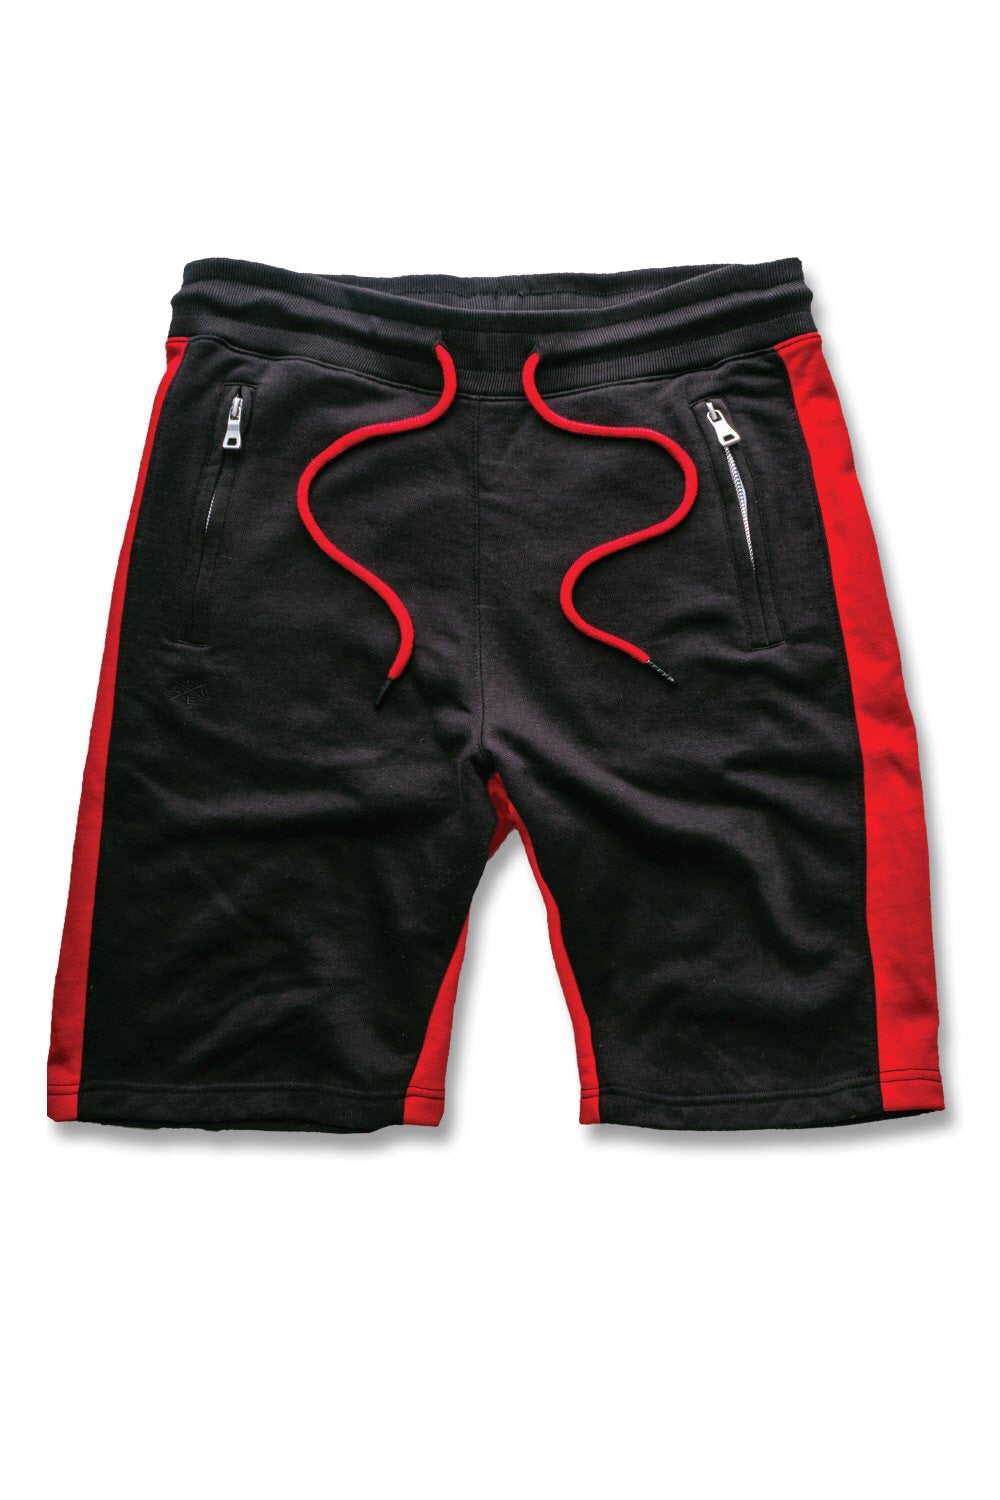 JORDAN CRAIG SHORT 8291SBLKRED